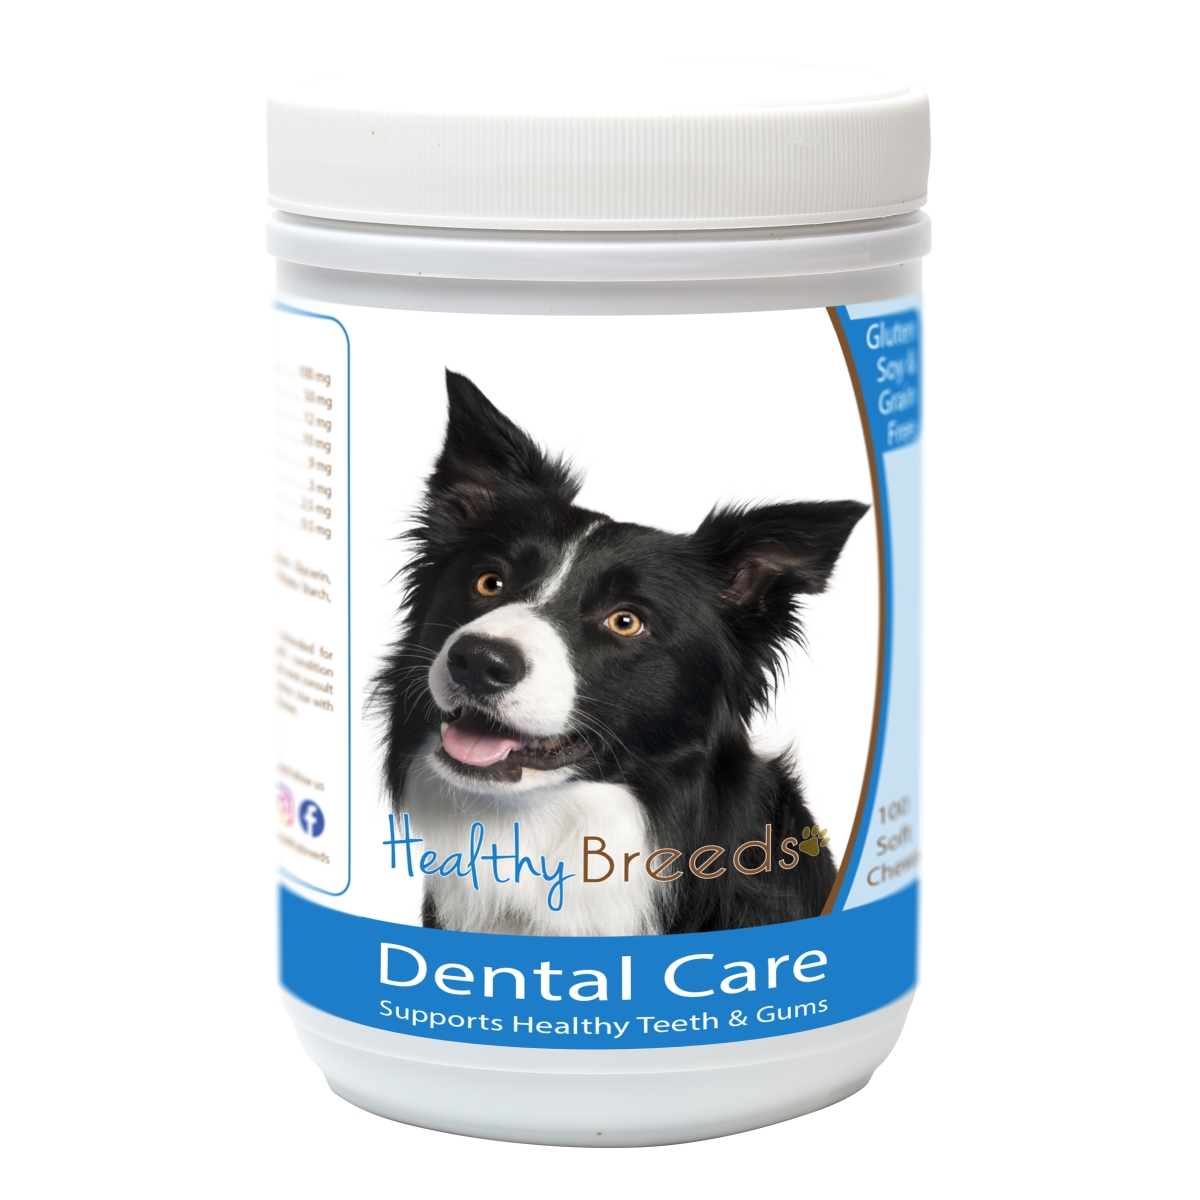 Healthy Breeds 840235163213 Border Collie Breath Care Soft Chews for Dogs - 60 Count